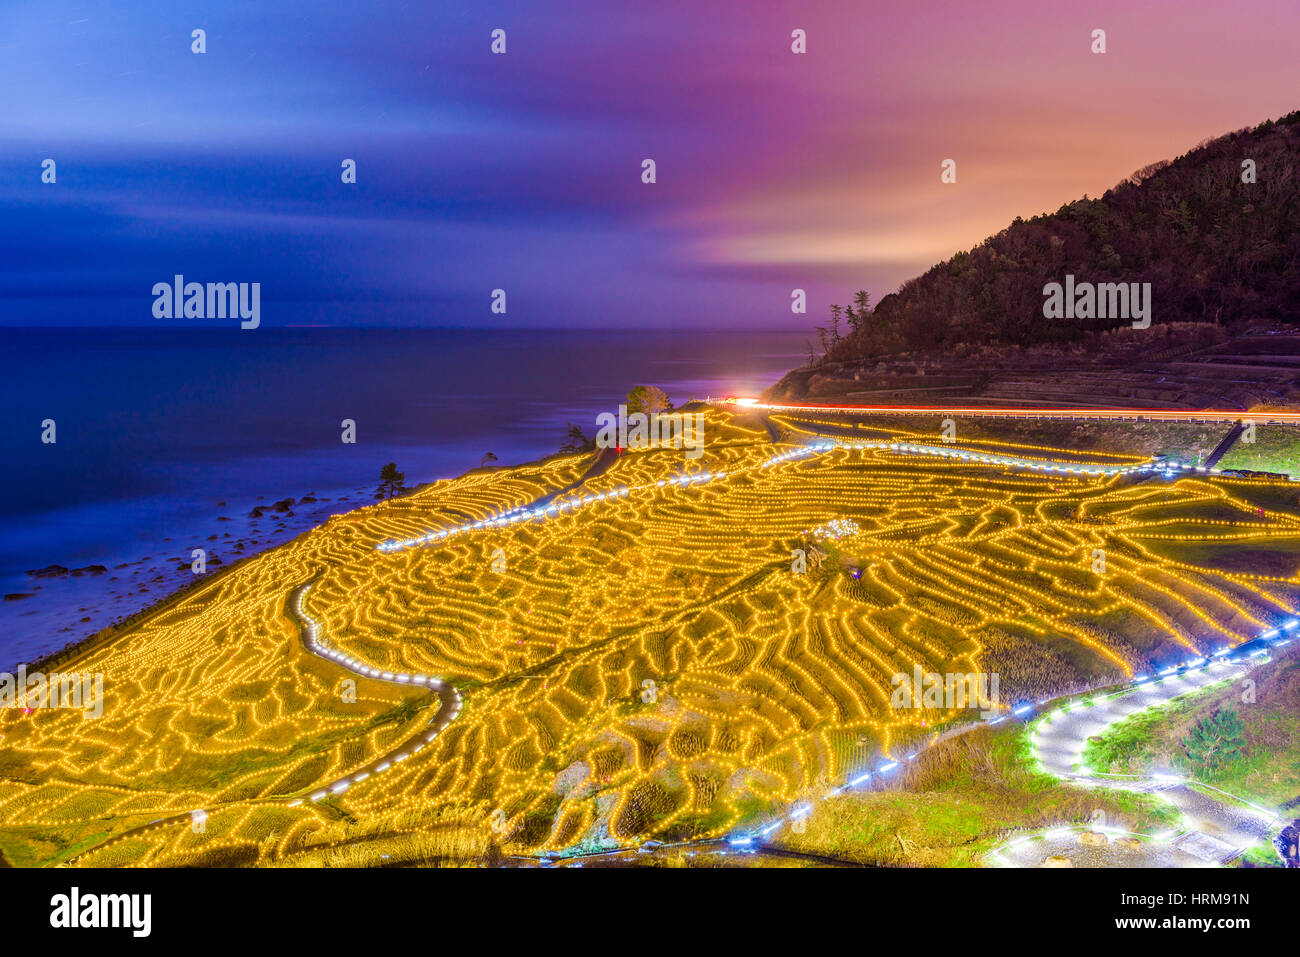 Wajima, Japan at Shiroyone Senmaida rice terraces at night. - Stock Image